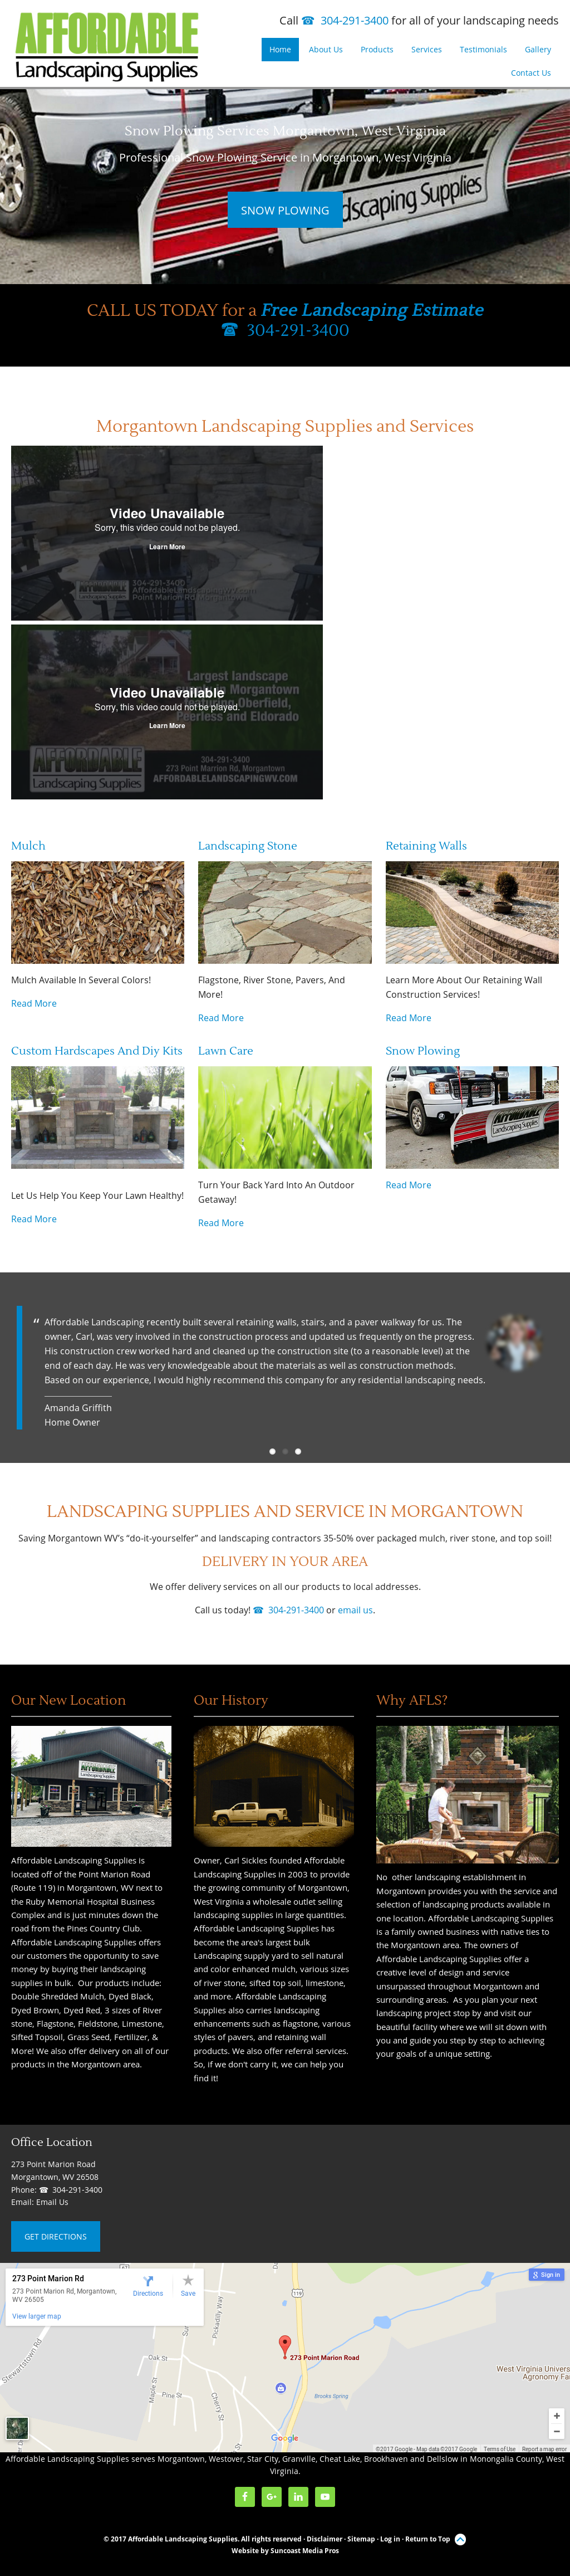 affordable landscaping supplies competitors revenue and employees